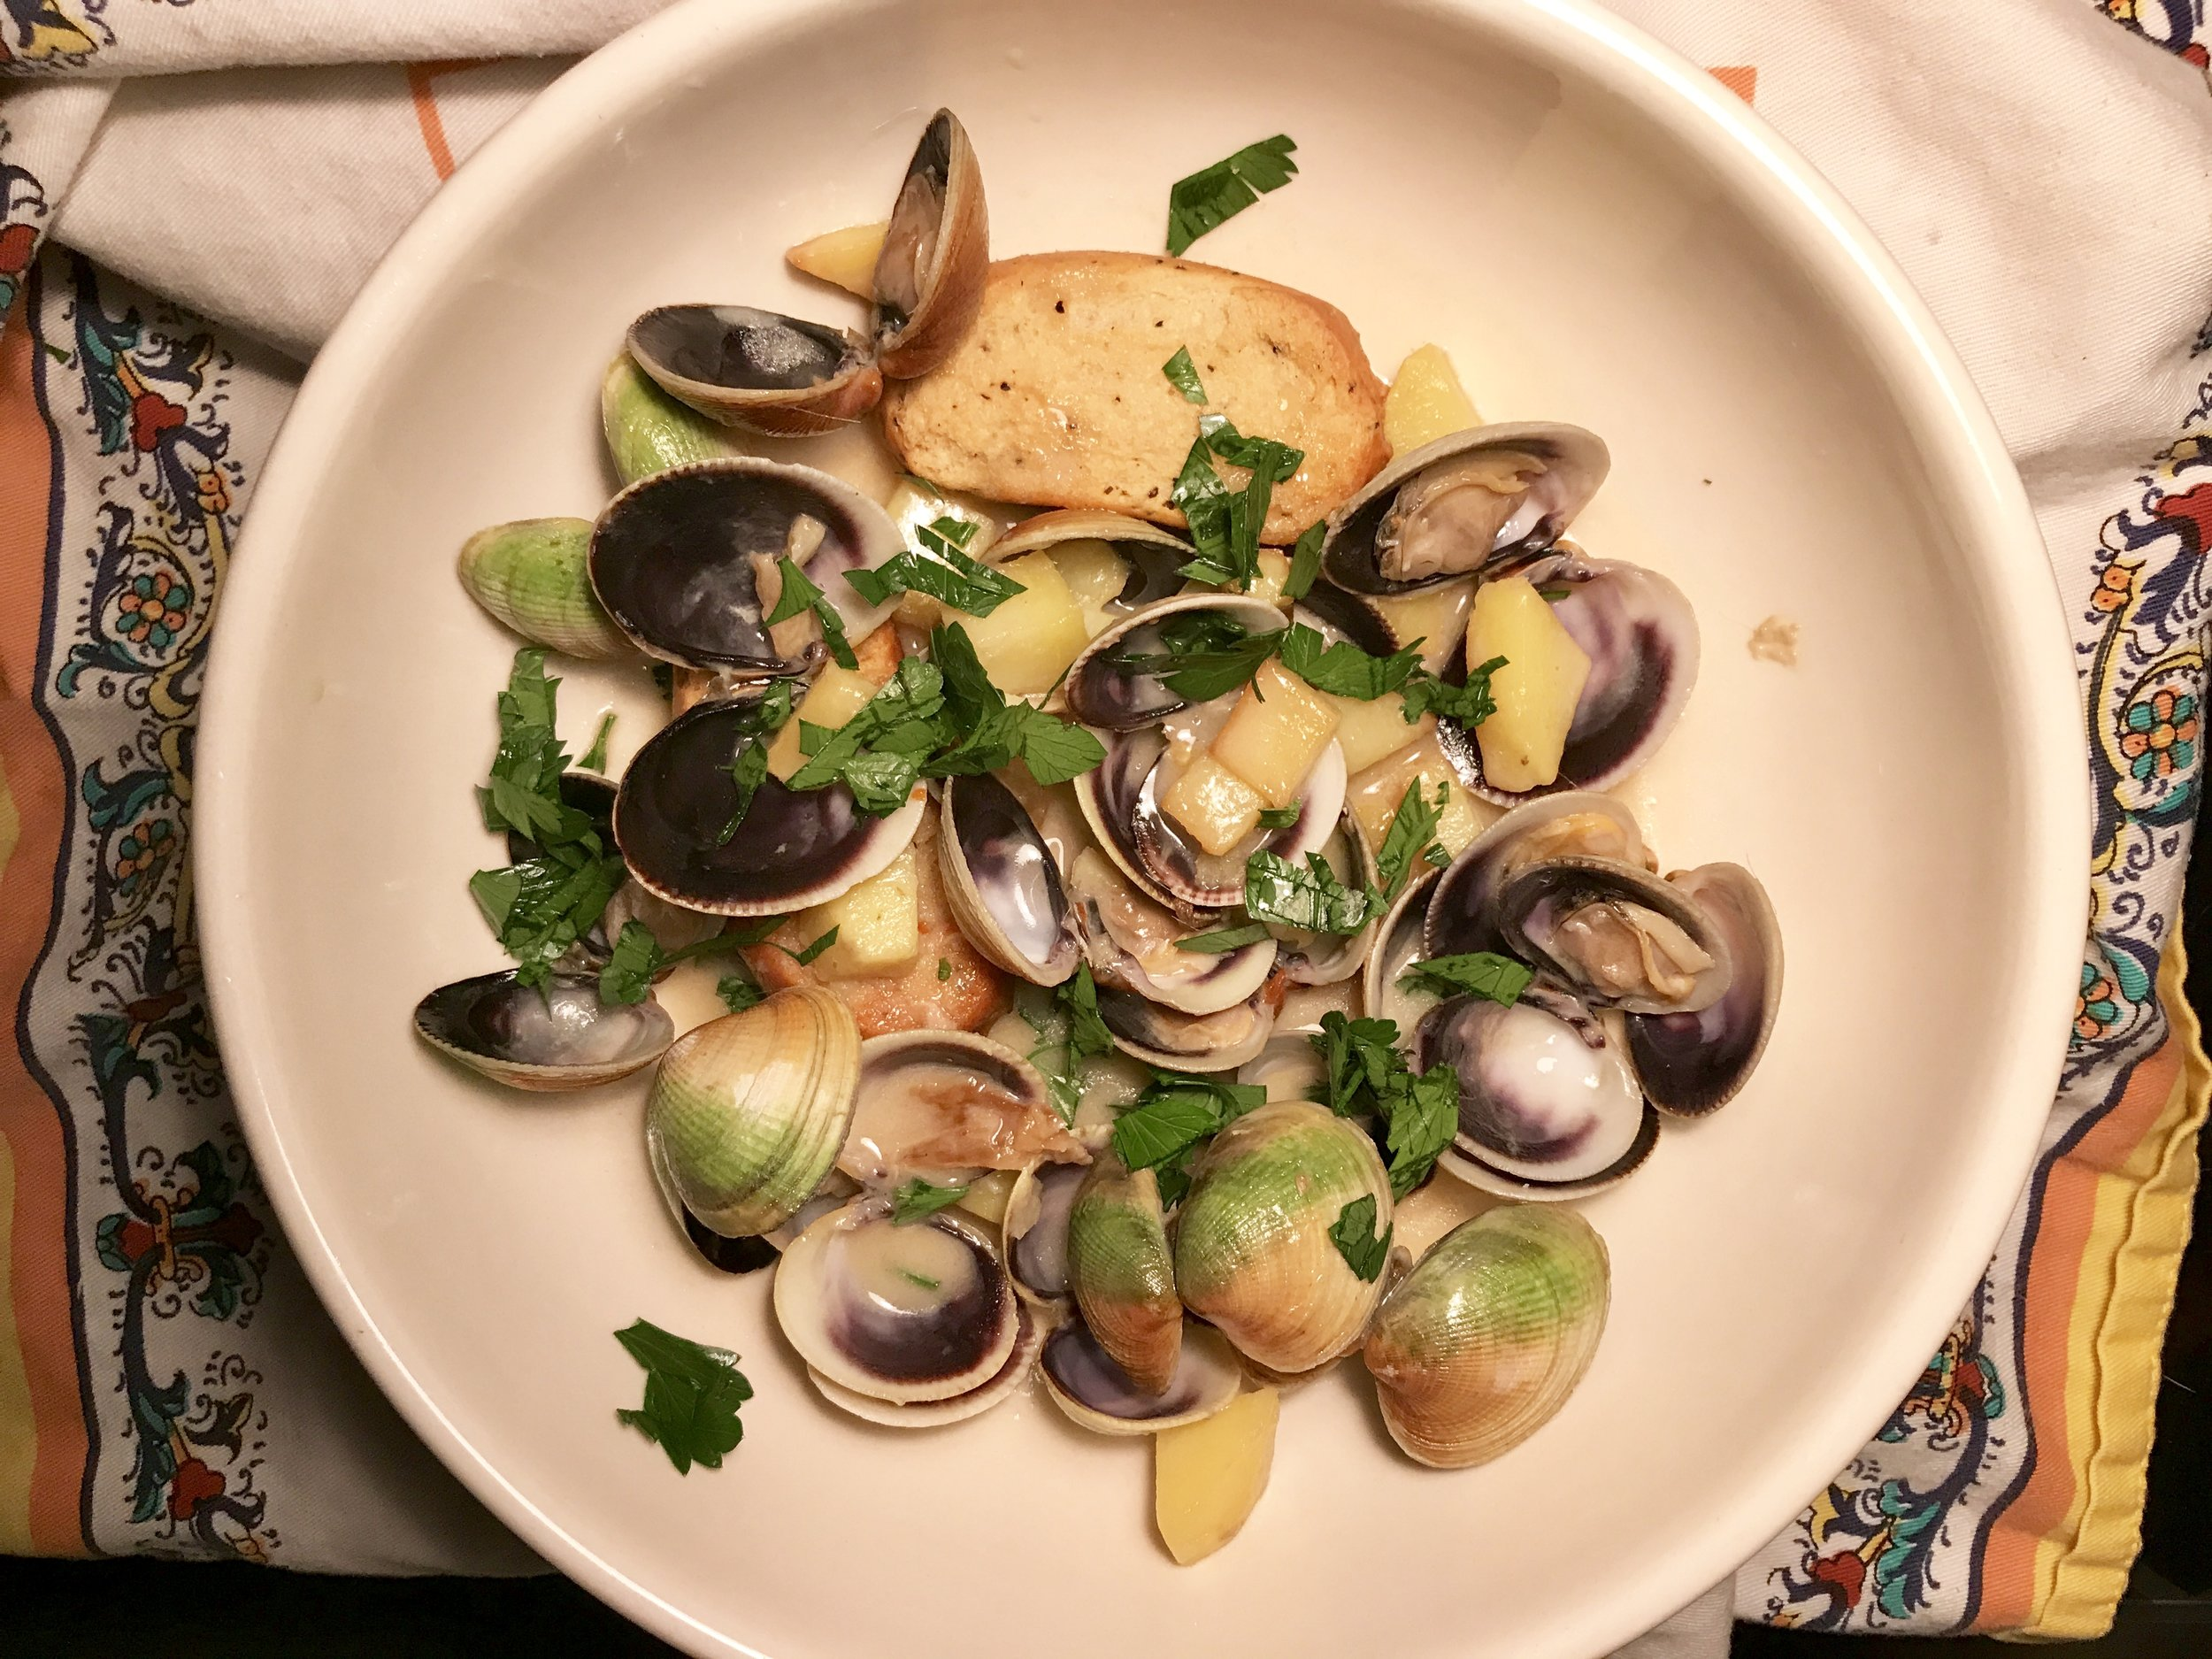 Vongole clams, potatoes and black pepper friselle to soak up the stew's broth.